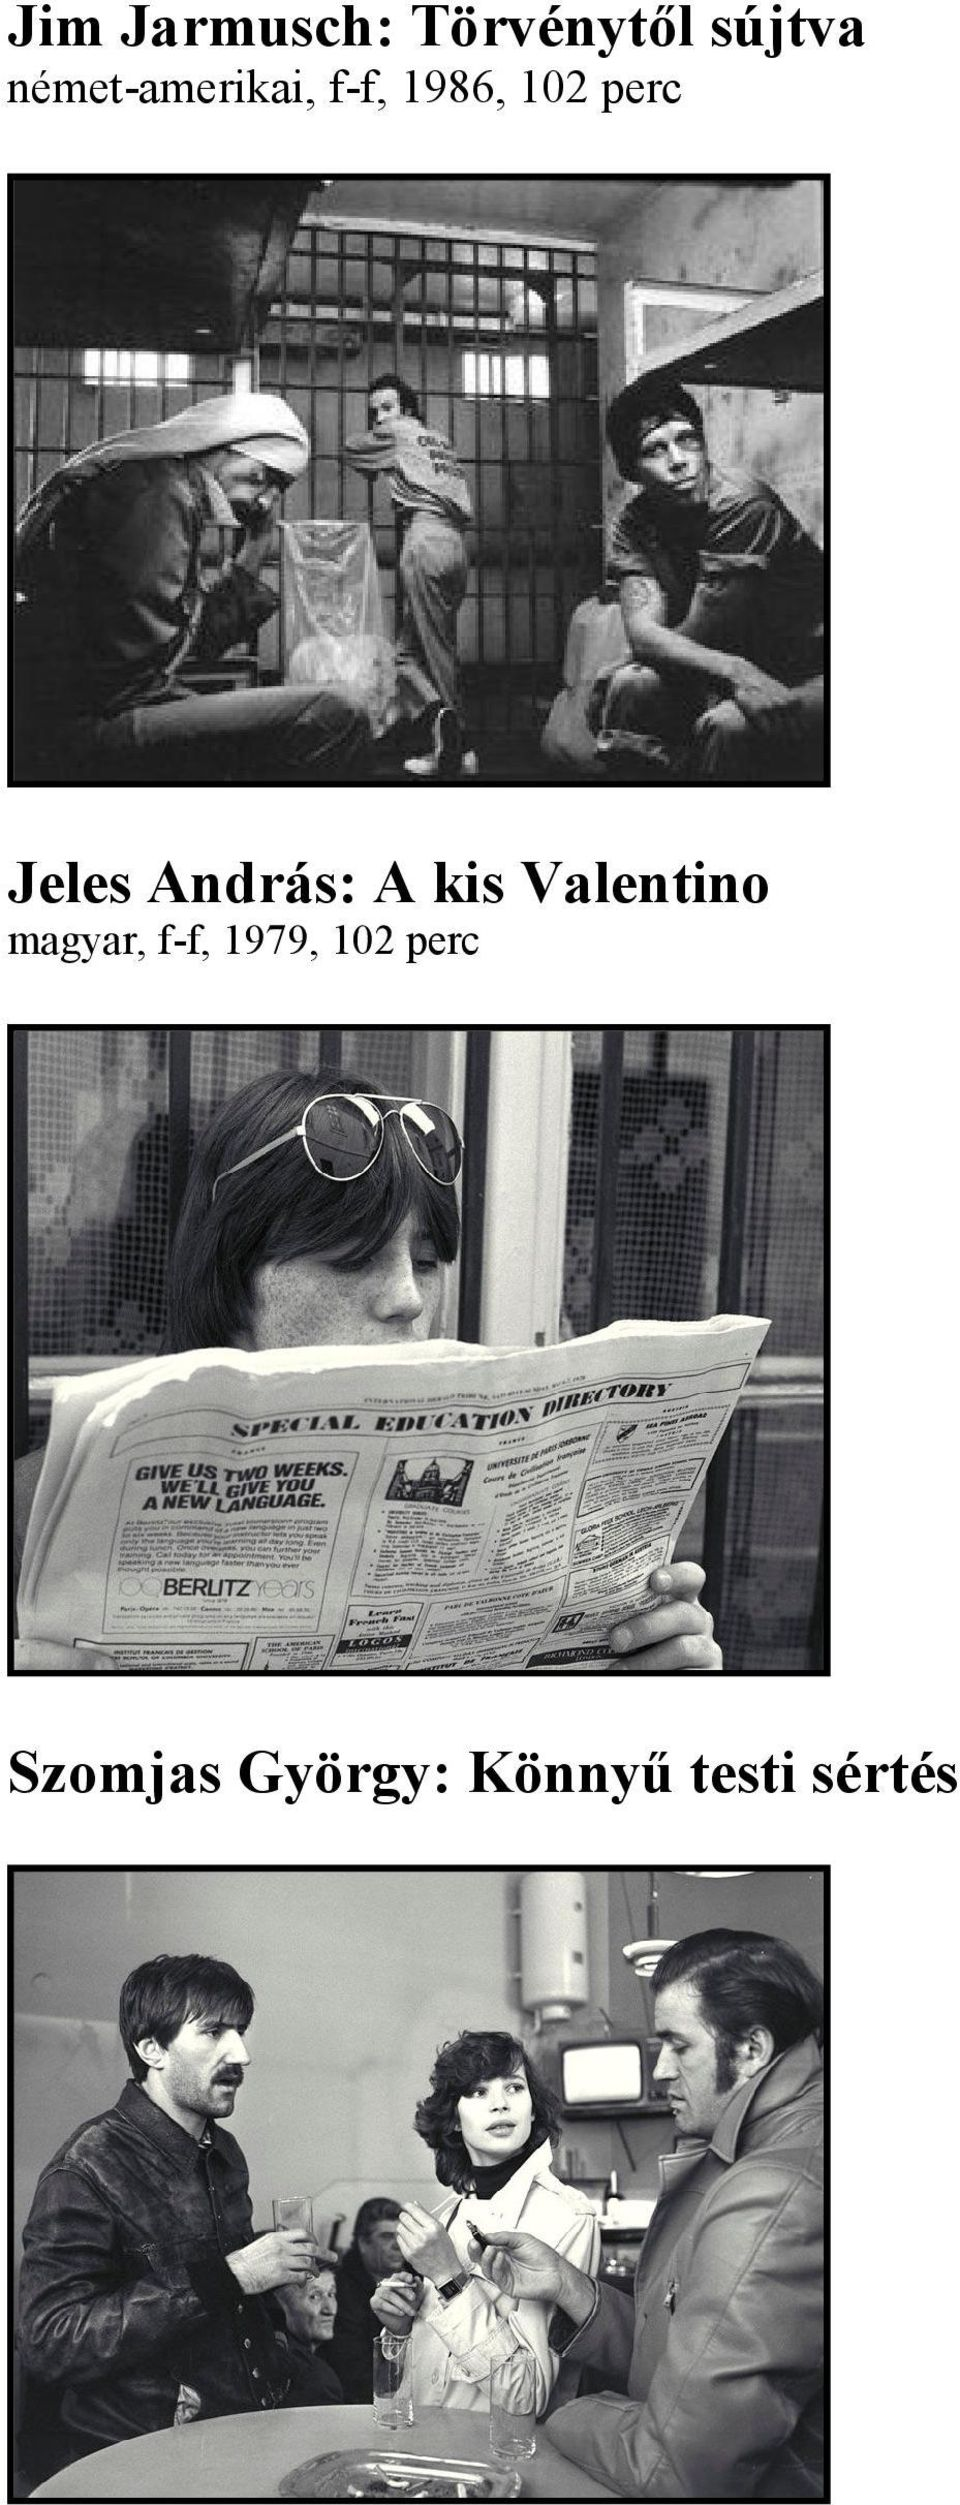 Jeles András: A kis Valentino magyar,